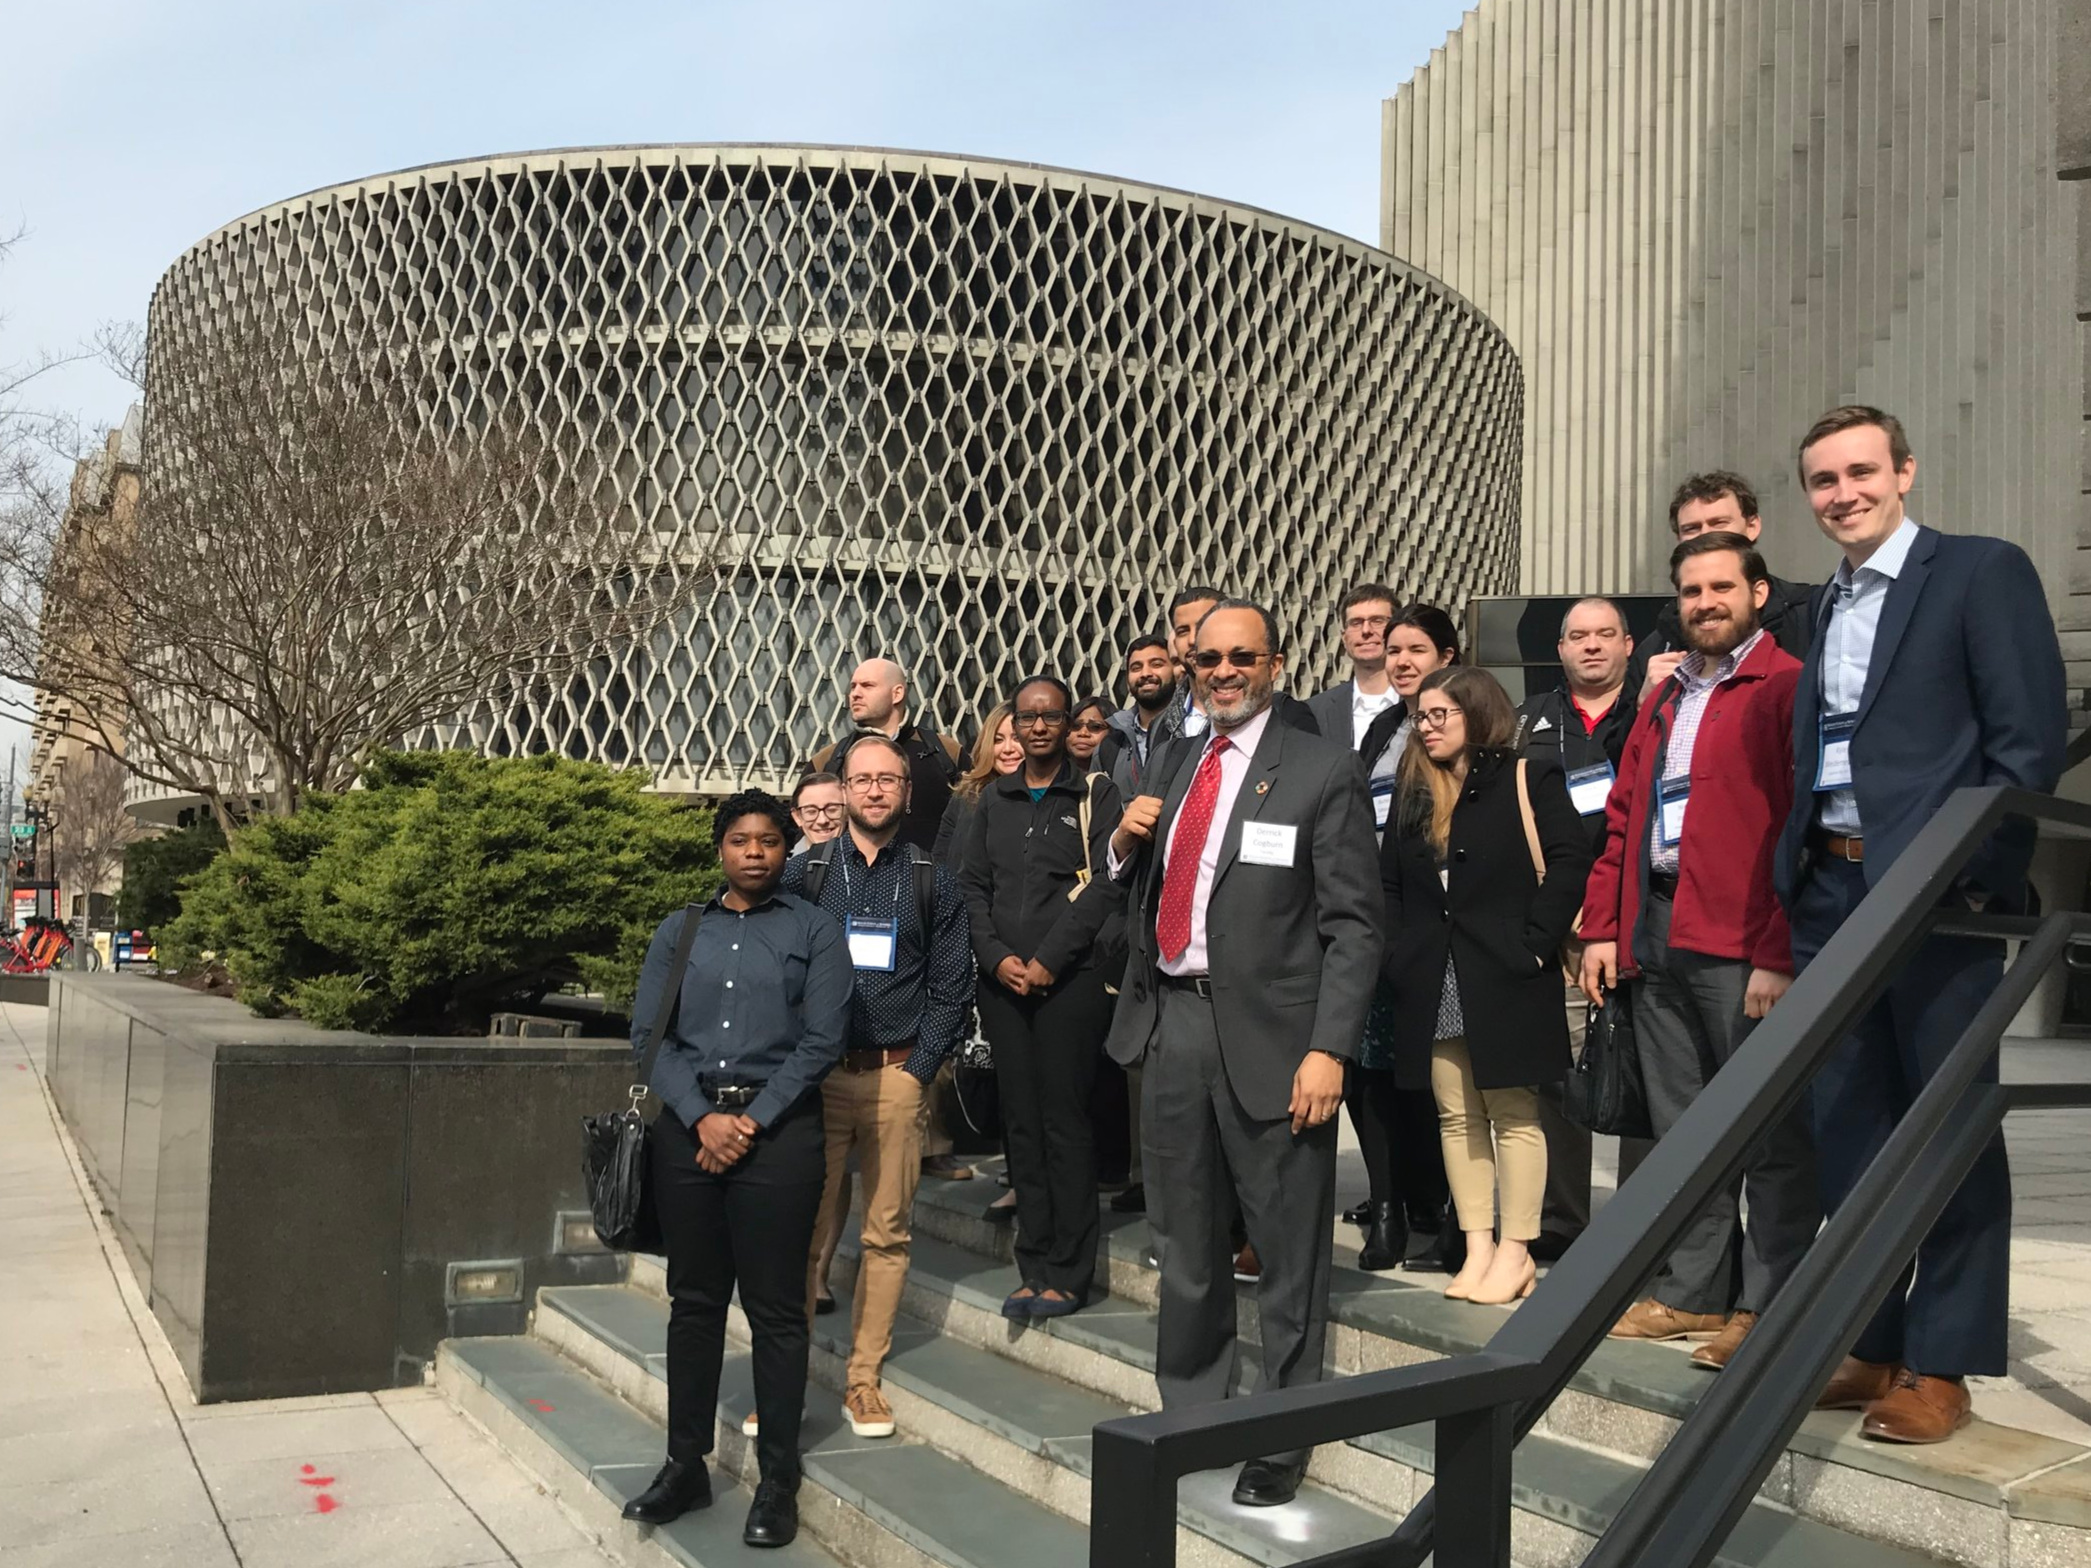 Dr. Derrick Cogburn accompanying MS in Business Analytics students for the Pan-American Health Organization' site visit.